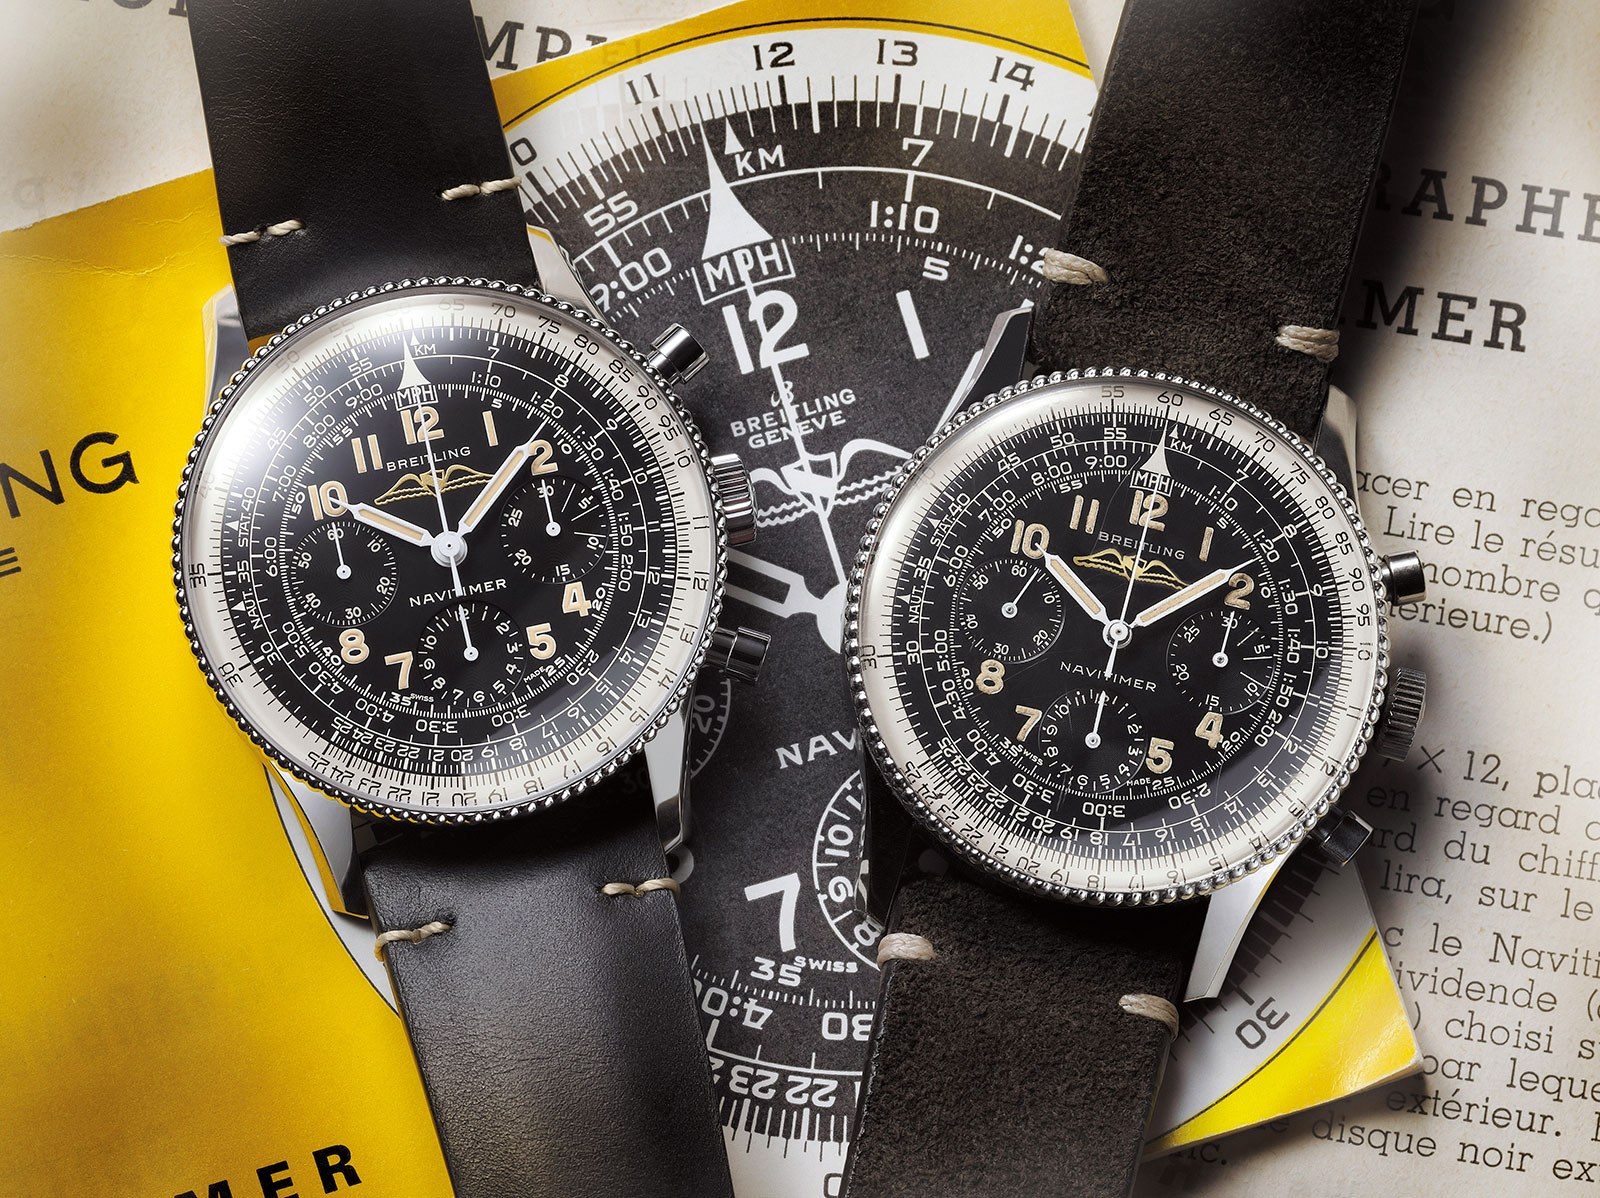 Breitling Navitimer 806 1959 Re-Edition comparison